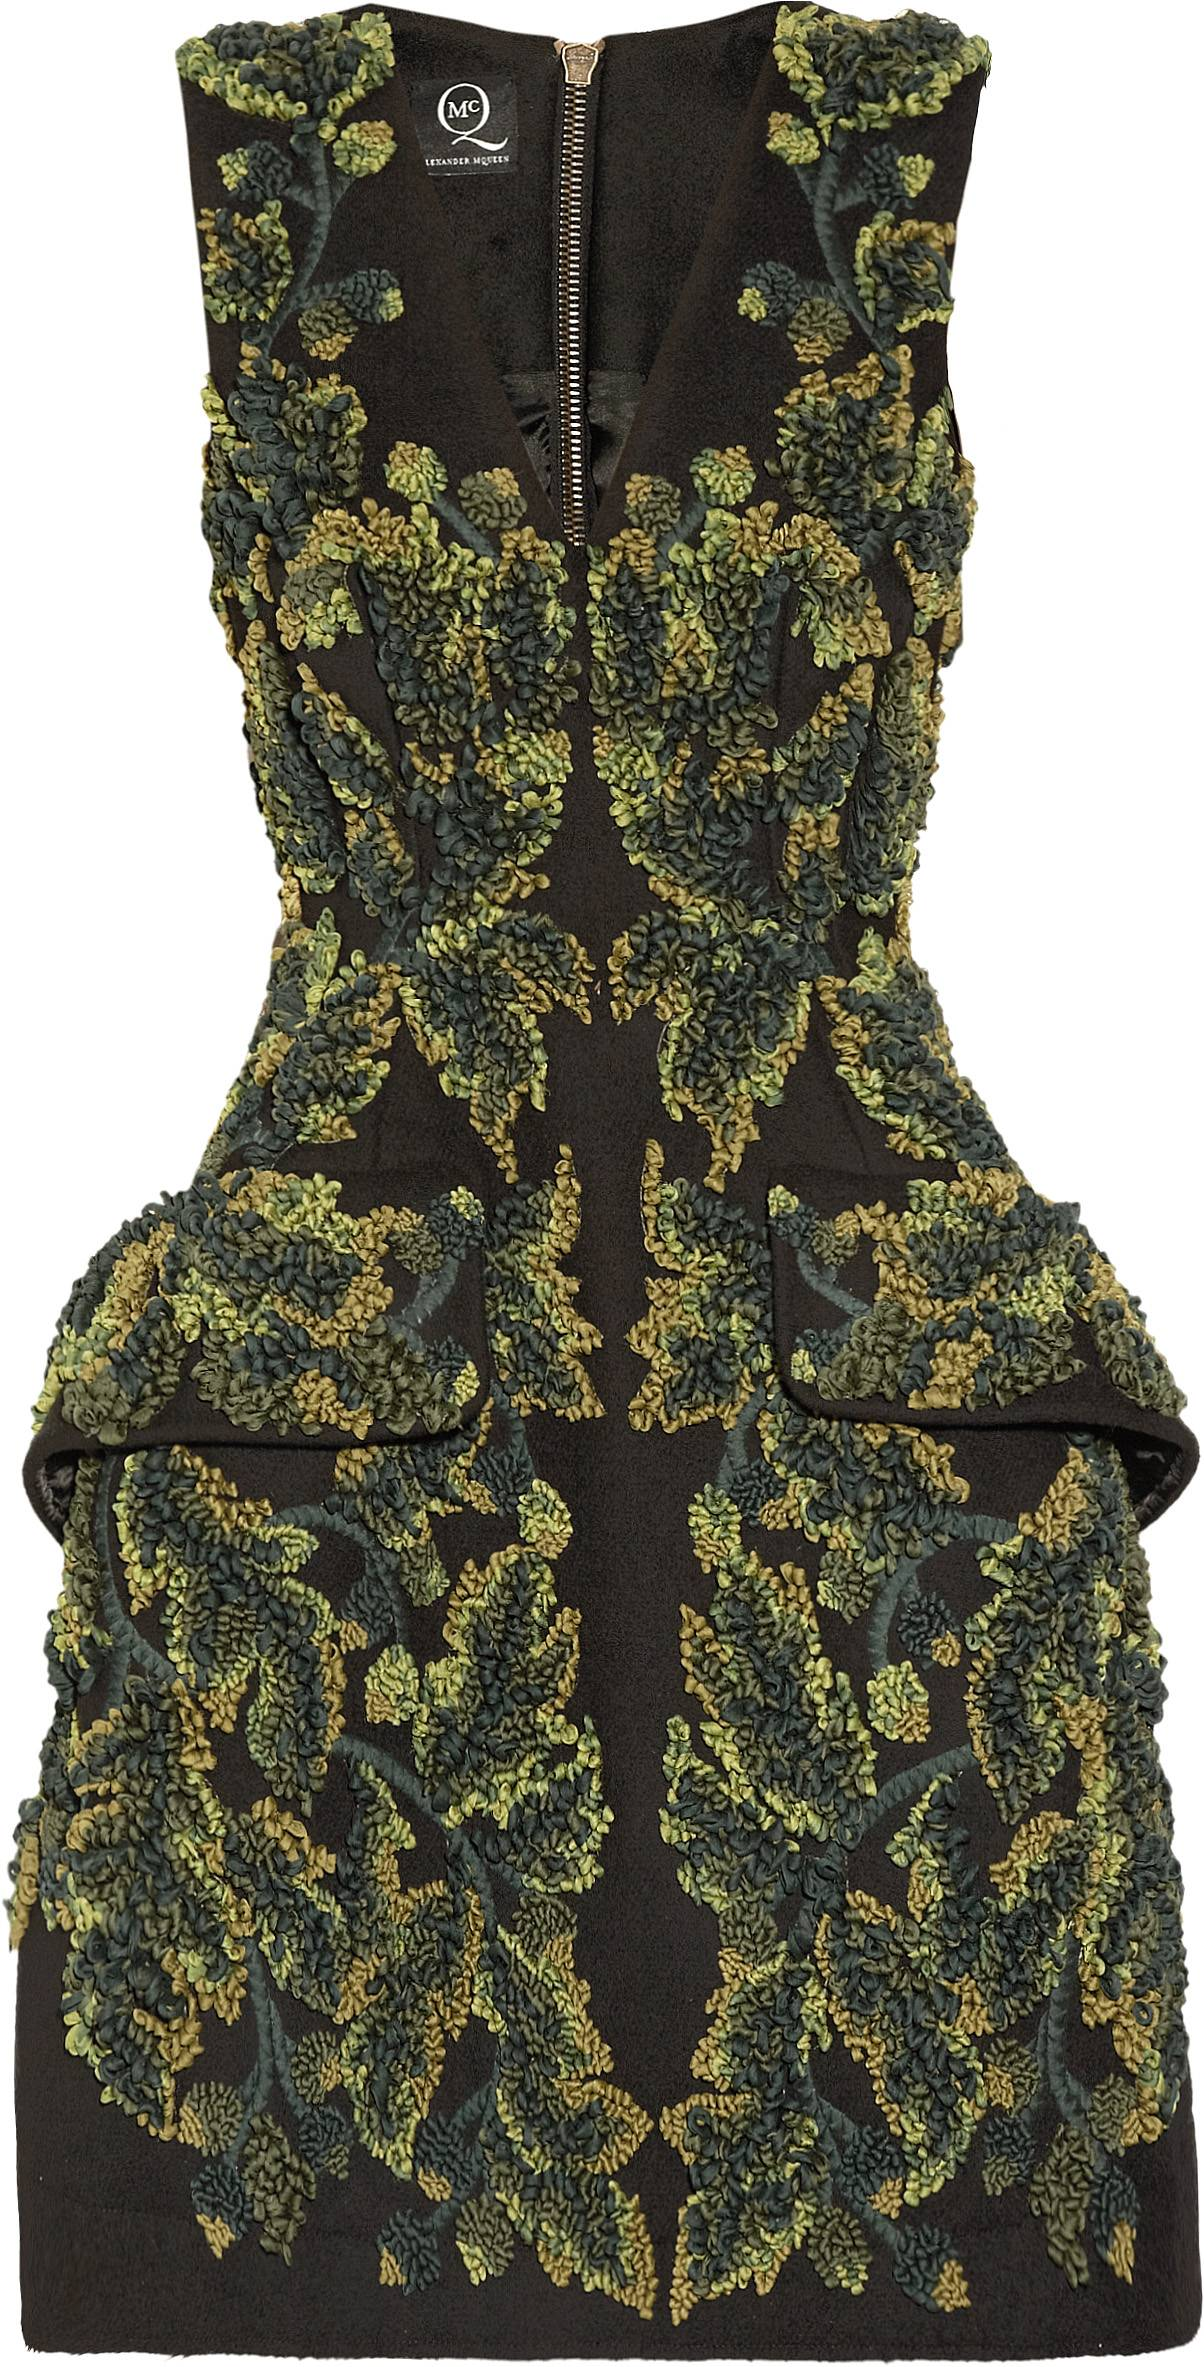 322564 McQ Alexander McQueen Embroidered Extreme Dress NET-A-PORTER